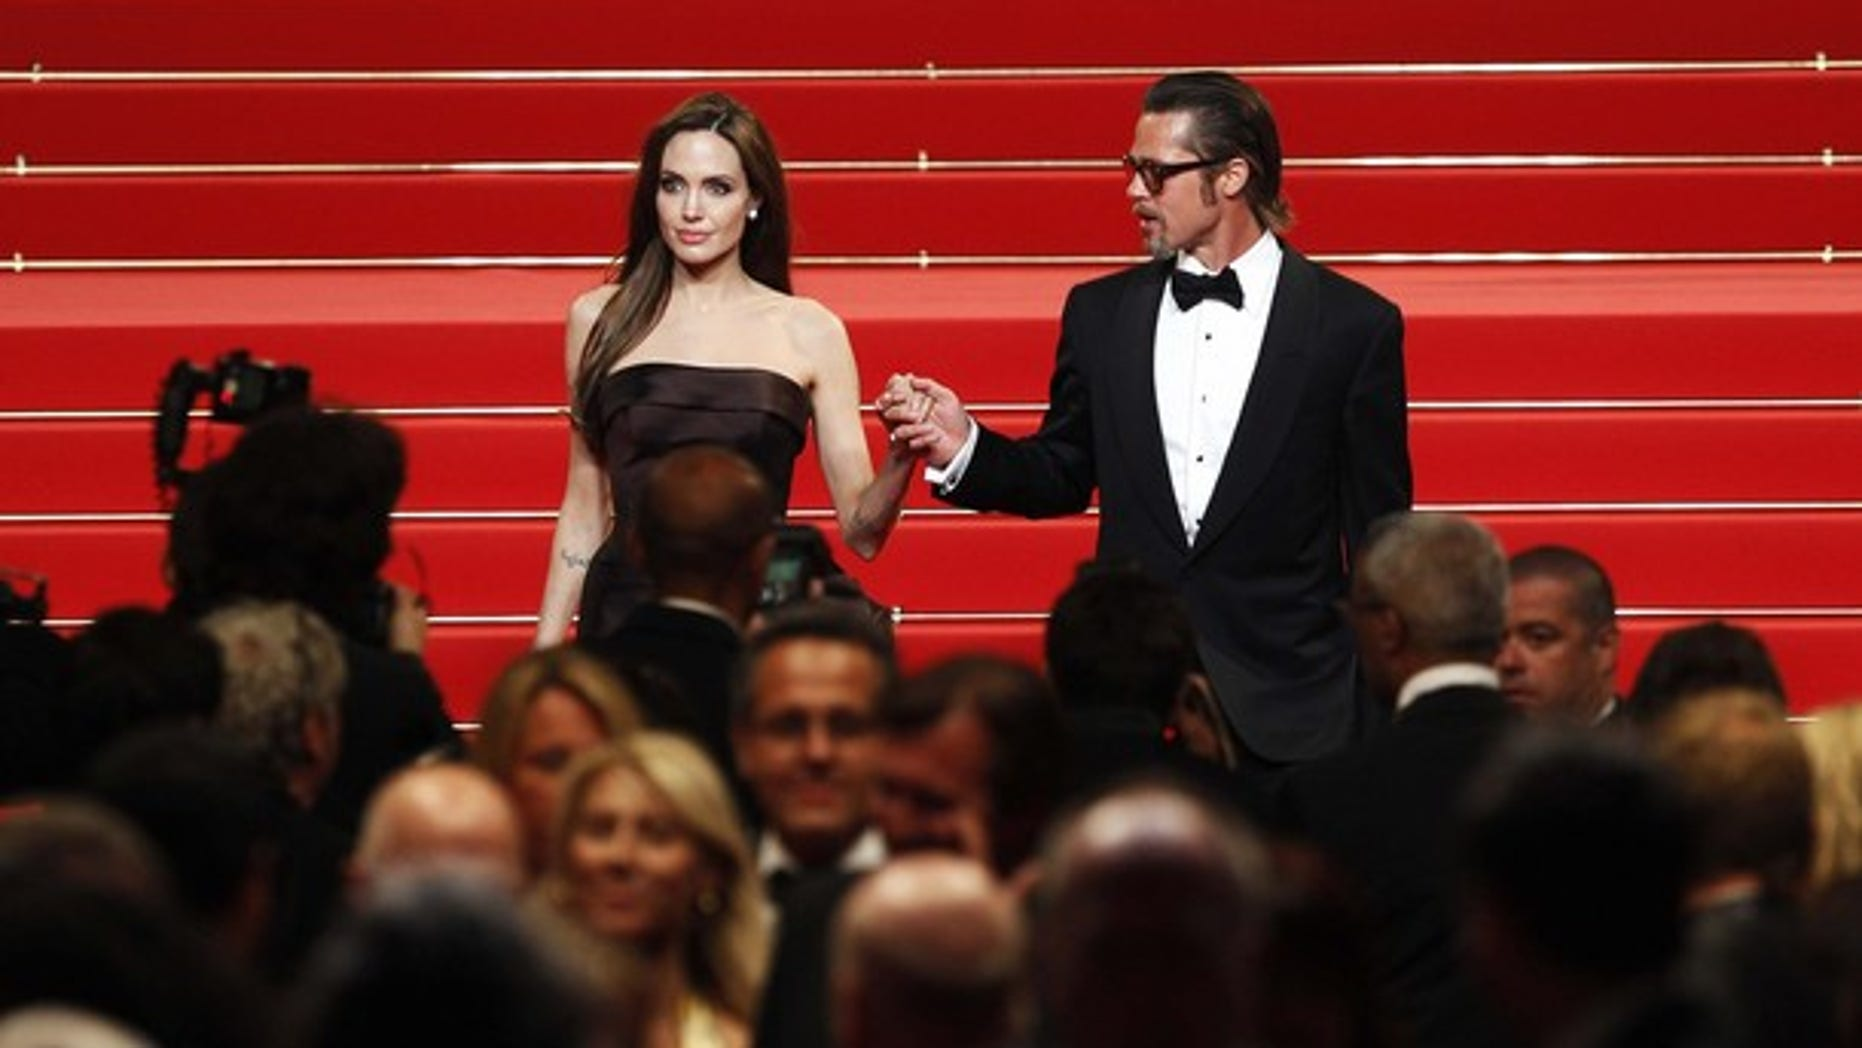 """May 16: Brad Pitt (R) and actress Angelina Jolie leave the festival palace after the screening of the film """"The Tree of Life"""". (Reuters)"""